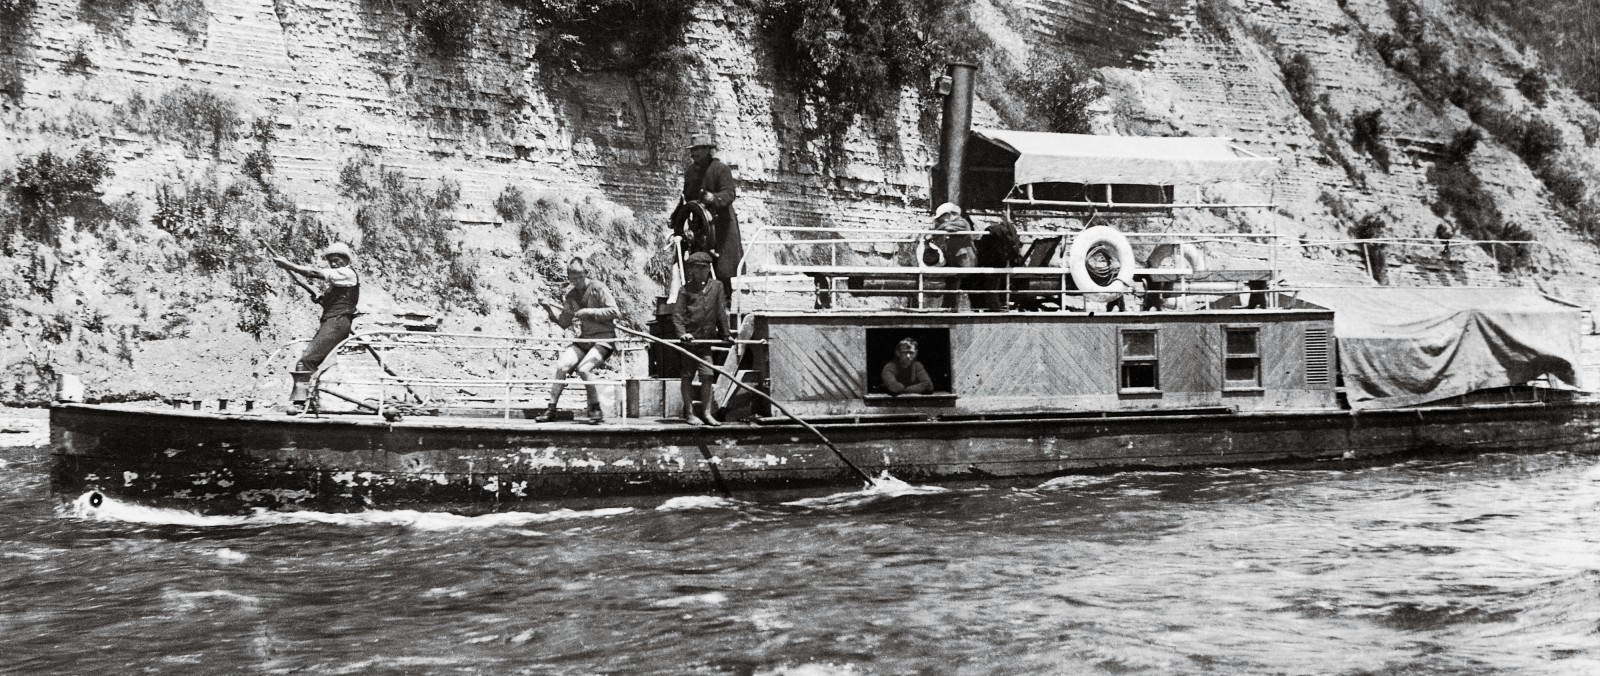 Backs and poles bending to the strain, the crew of Ongarue negotiate the Rurumaiakatea Rapid, a kilometre downriver from Taumarunui. Ongarue's shallow draught and tunnel screw made this trusty work horse ideal for the white-water reaches of the upper Whanganui, where she was held in considerable affection by settlers.